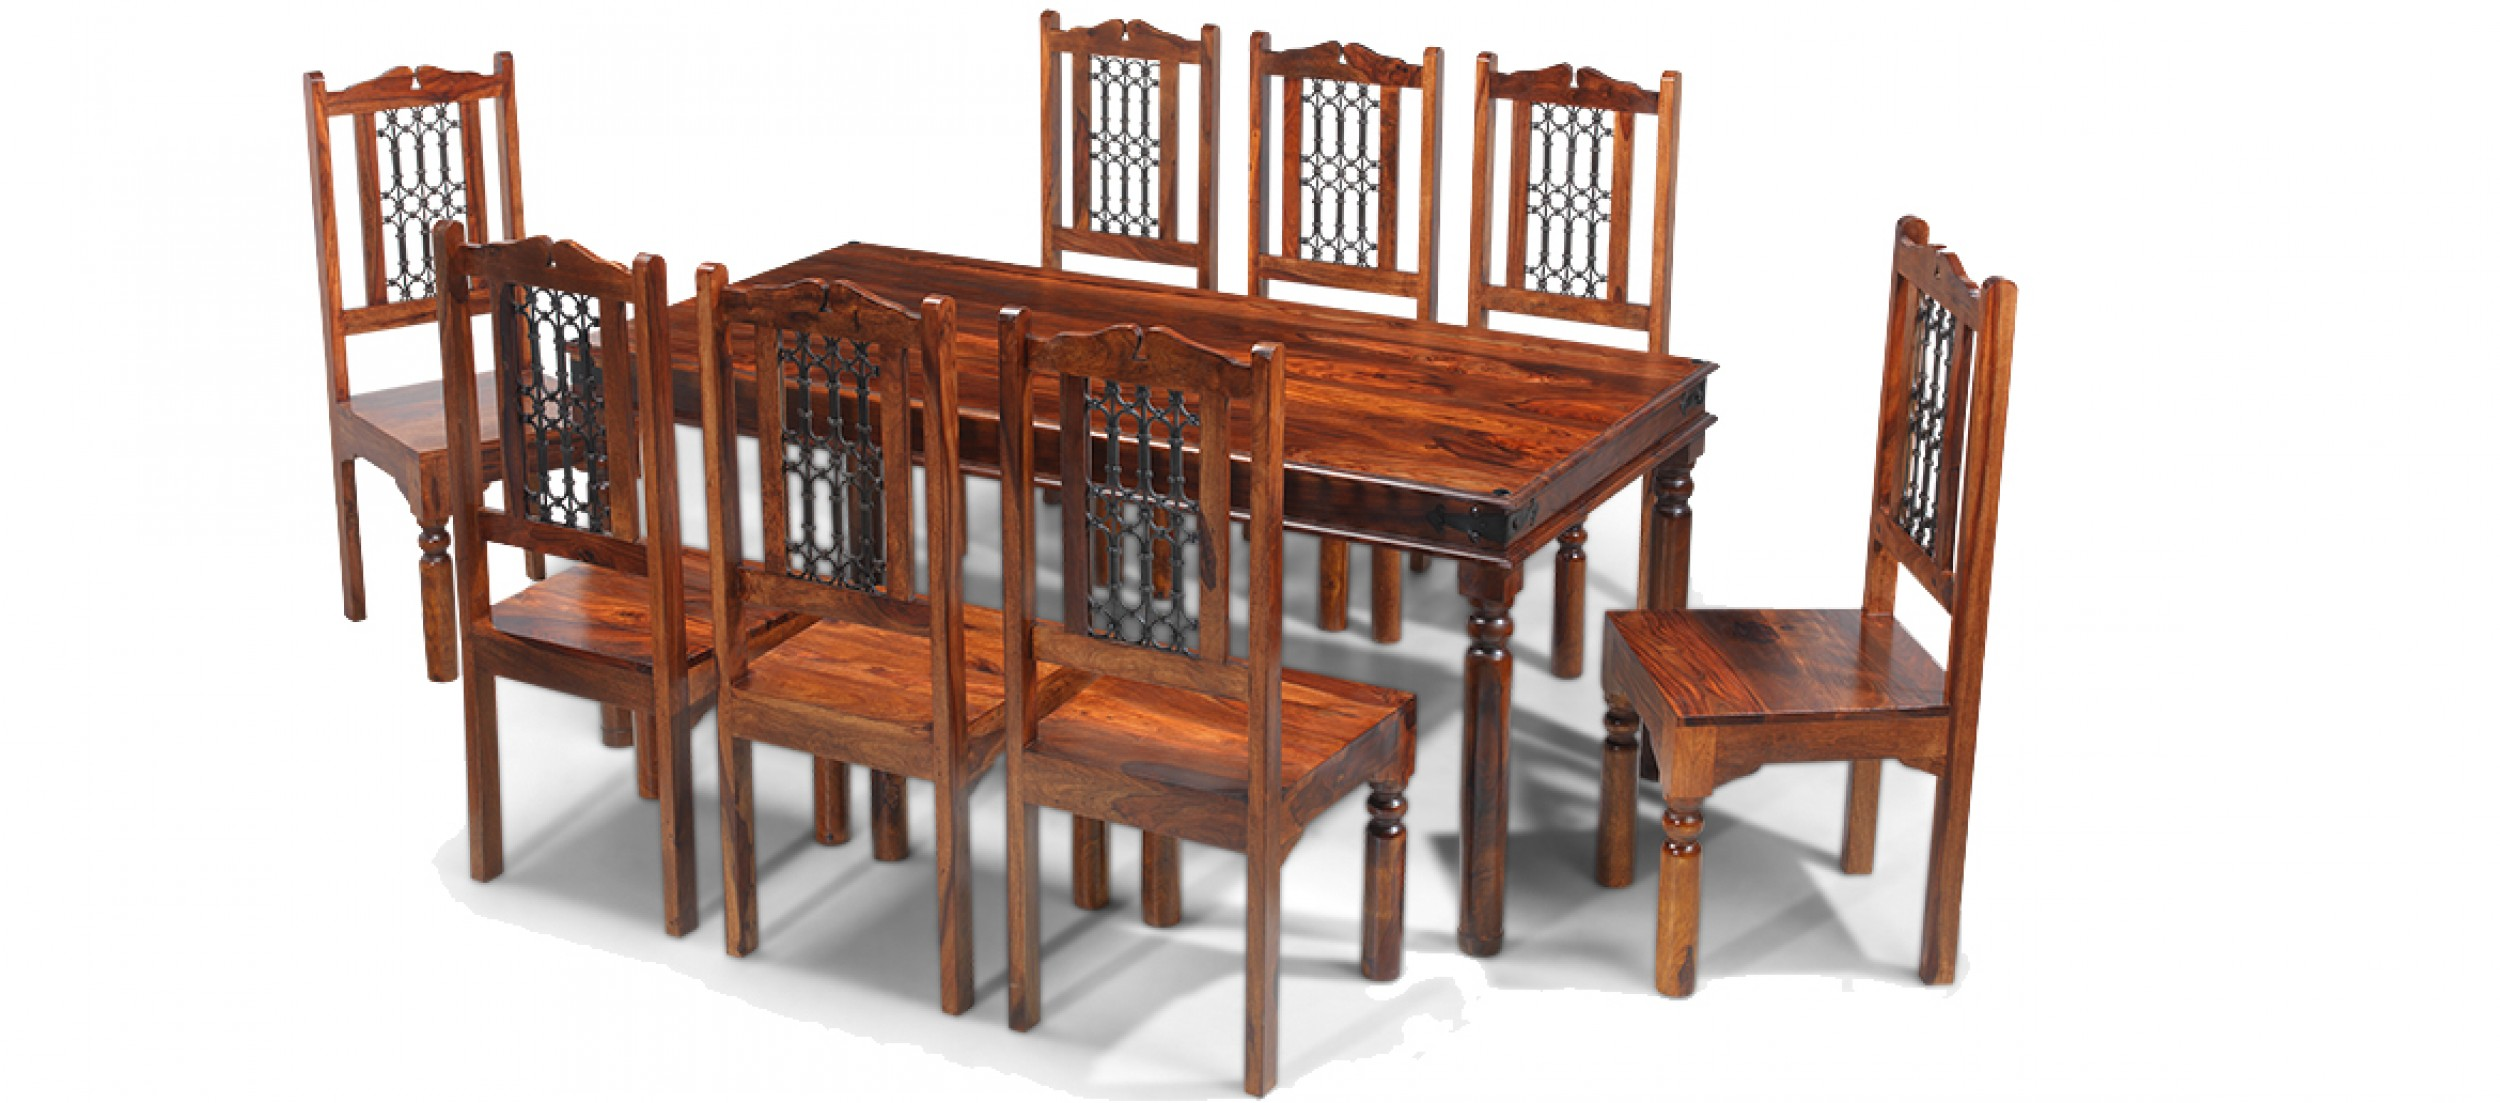 Jali sheesham 200 cm thakat dining table and 8 chairs for Dining table and 8 chairs